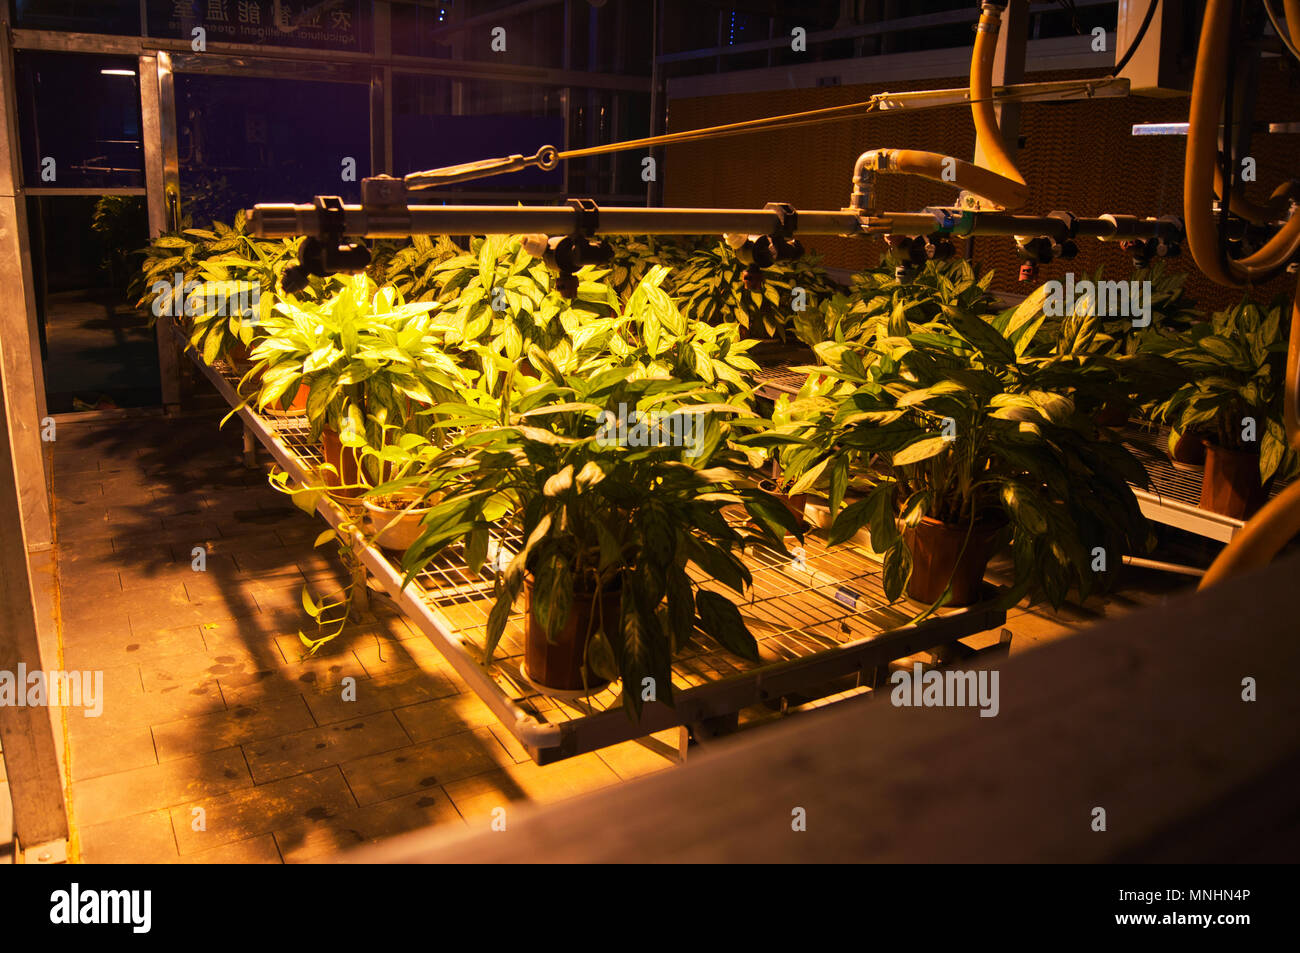 An automated plant watering system on display at the China Science